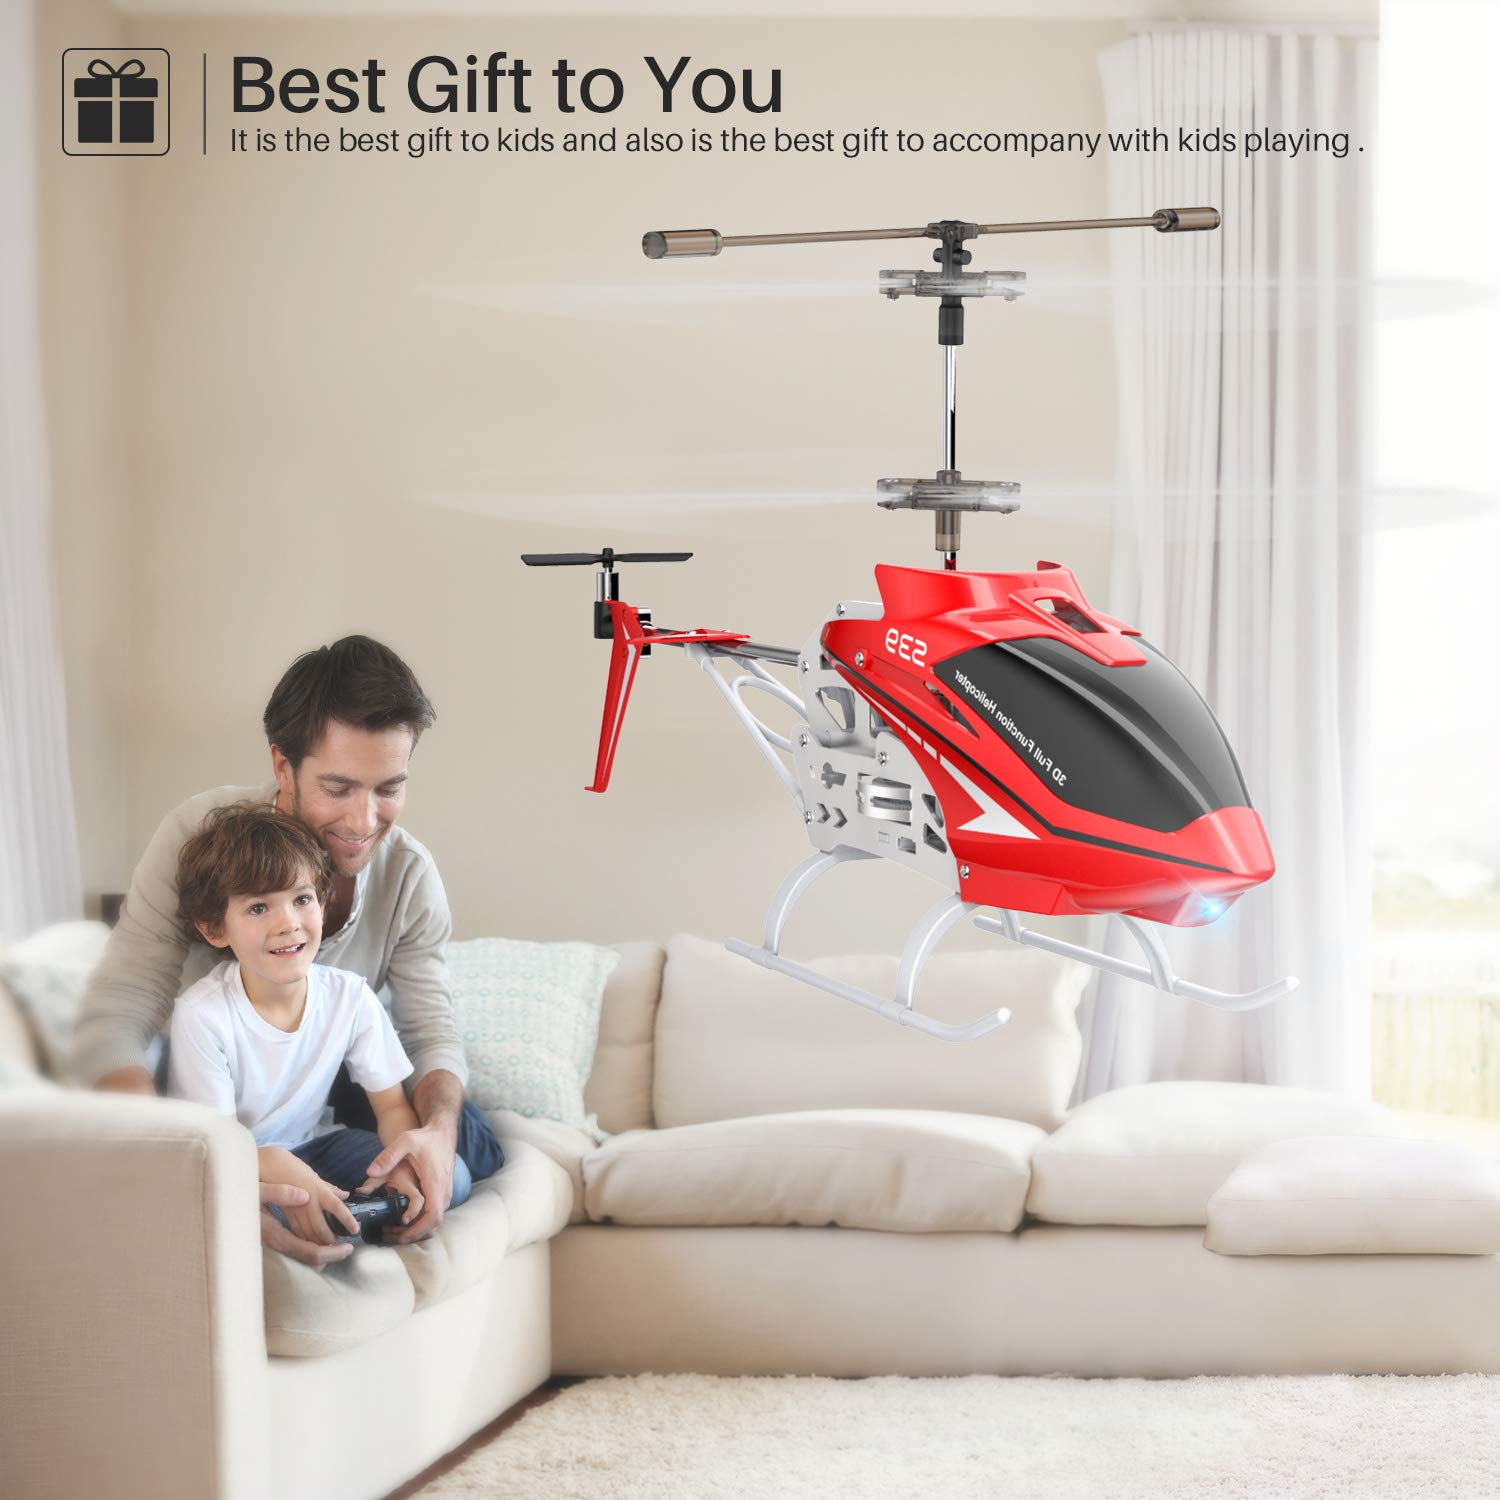 SYMA RC Helicopter, S39 Aircraft with 3.5 Channel,Bigger Size, Sturdy Alloy Material, Gyro Stabilizer and High &Low Speed, Multi-Protection Drone for Kids and Beginners to Play Indoor-Red by SYMA (Image #7)